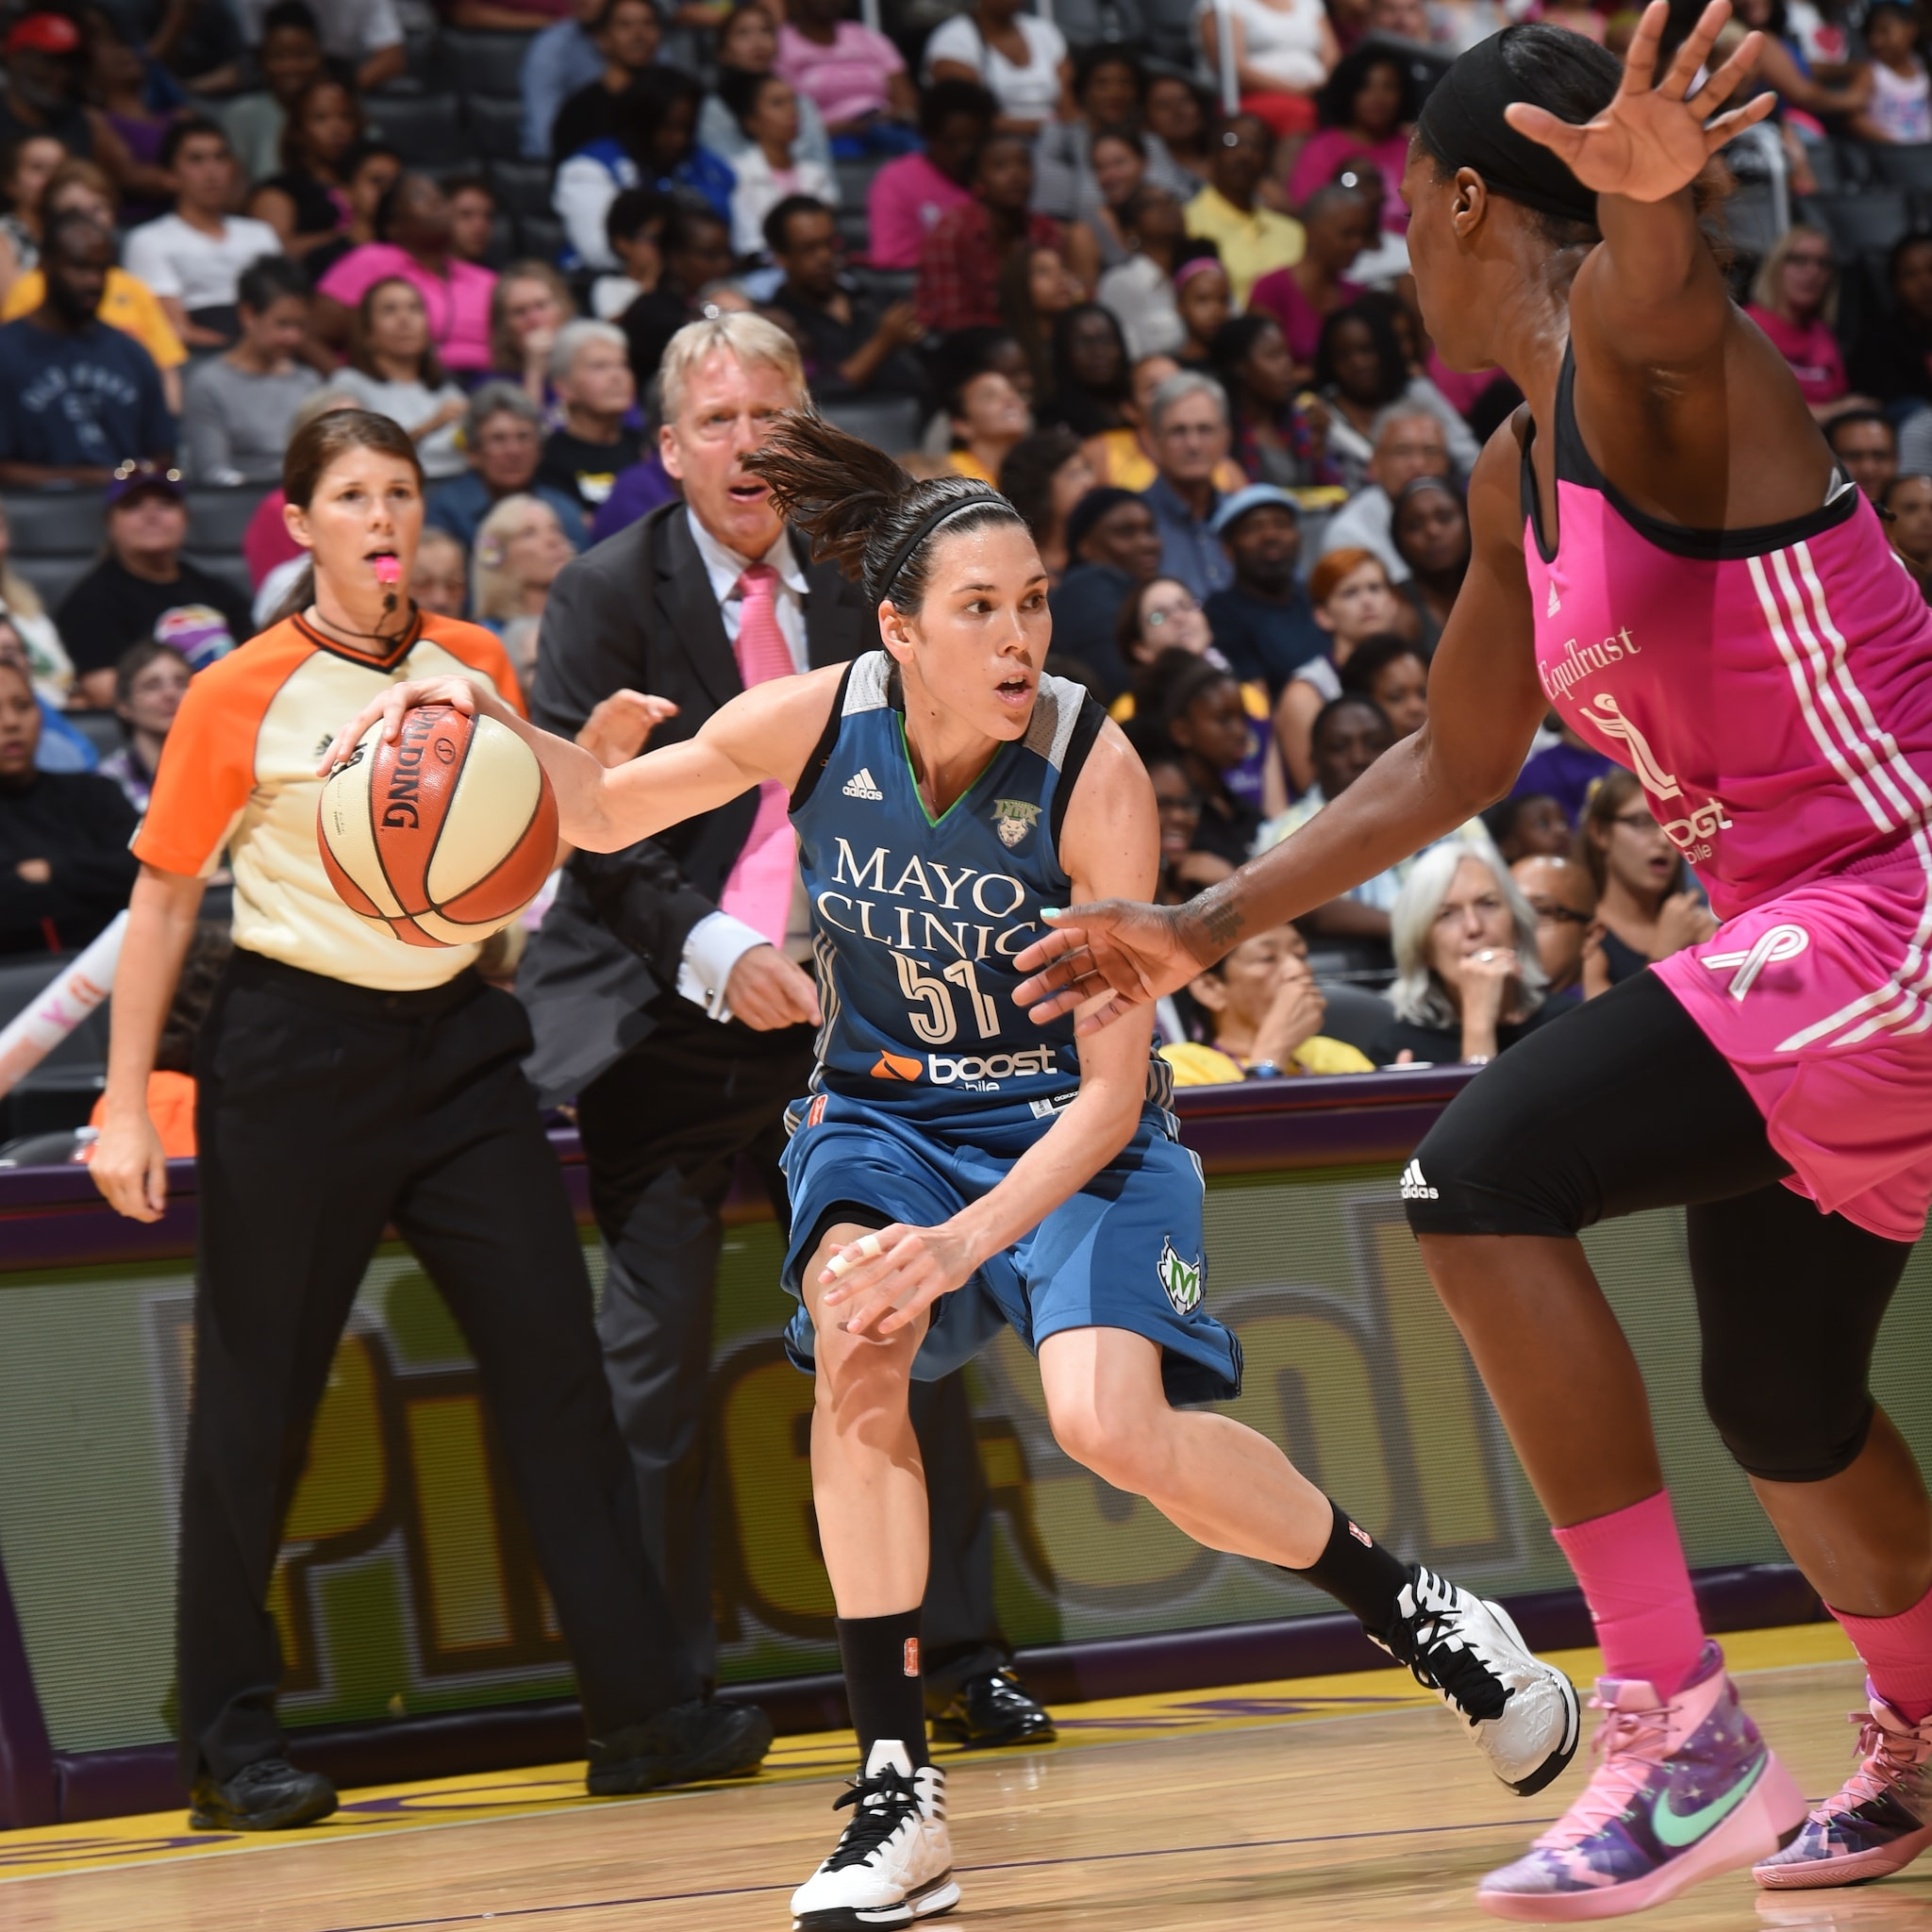 Lynx guard Anna Cruz had a solid all-around game in Los Angeles, finishing with nine points, three rebounds, four assists, two steals and one blocked shot despite the loss.